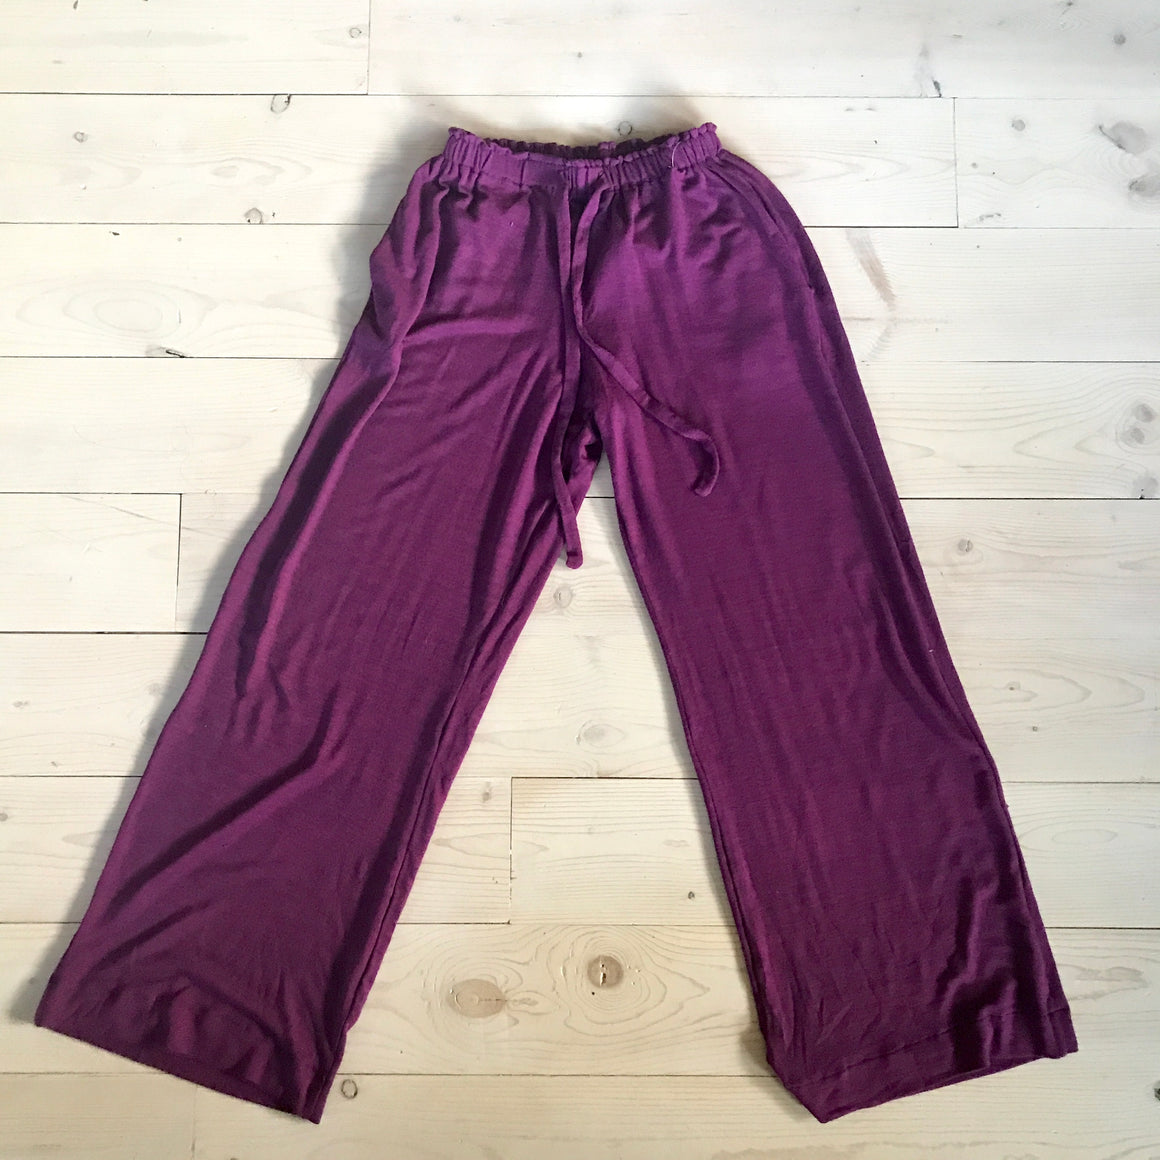 Attley Beach Pant - Purple - Spring 16 Sample - size 12